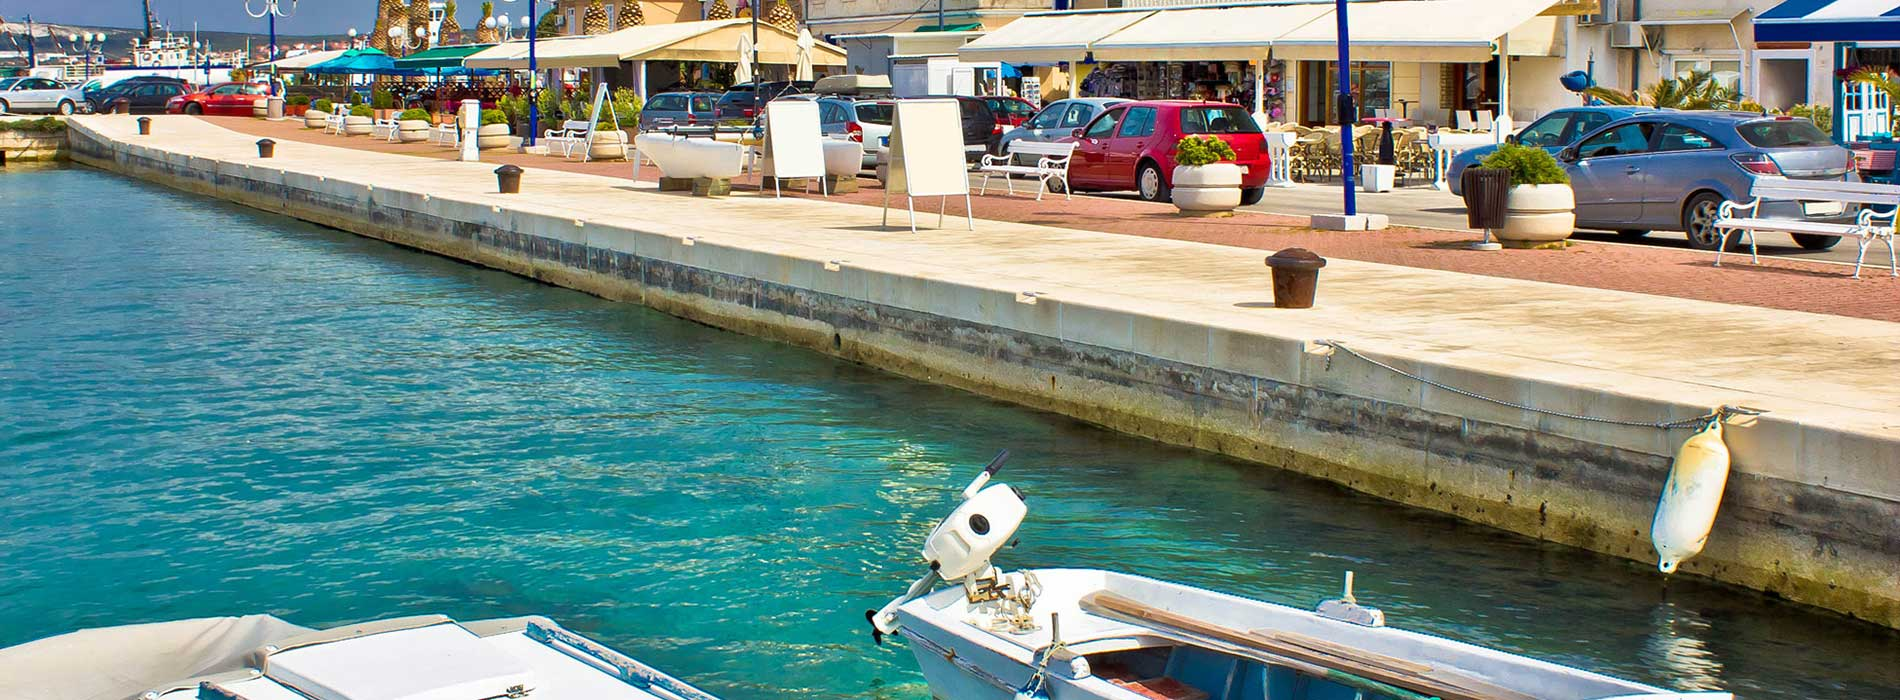 Adriatic town of Biograd na moru colorful waterfront and harbor.jpg